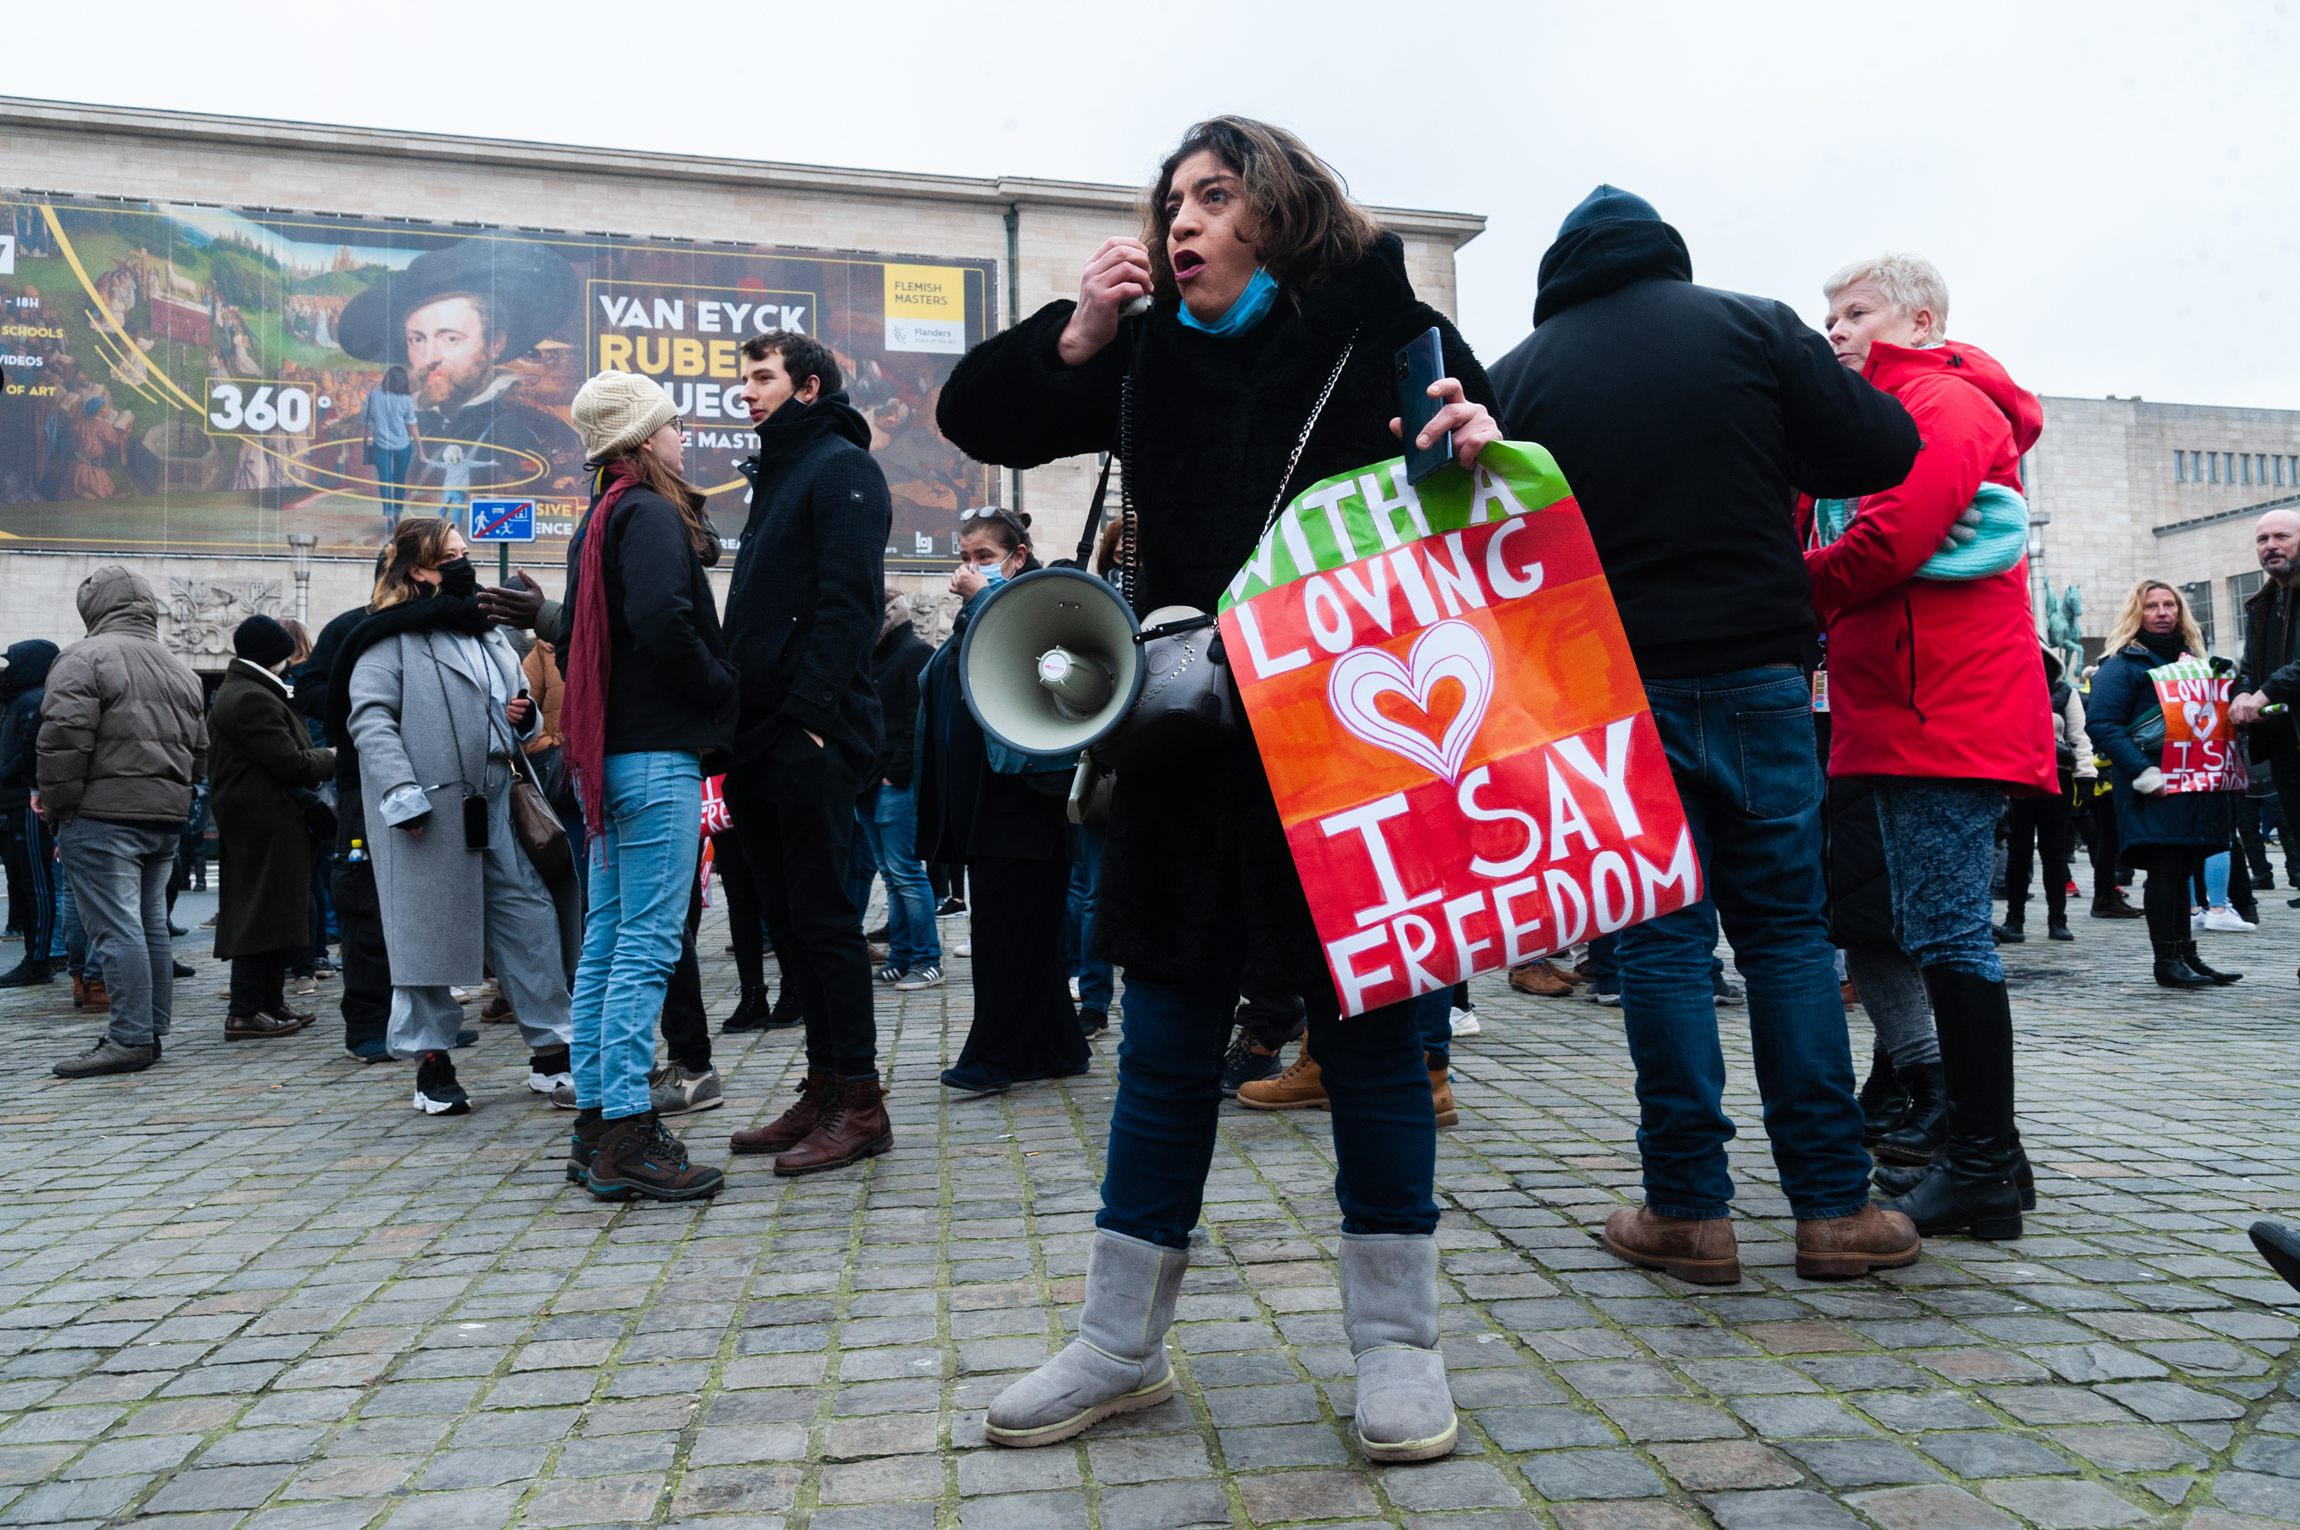 Rally against anti-Covid measures. A few hundred demonstrators gathered in the Belgian capital today to protest against measures taken in the fight against the coronavirus. 31 January 2021, Brussels (Nicolas Landemard)